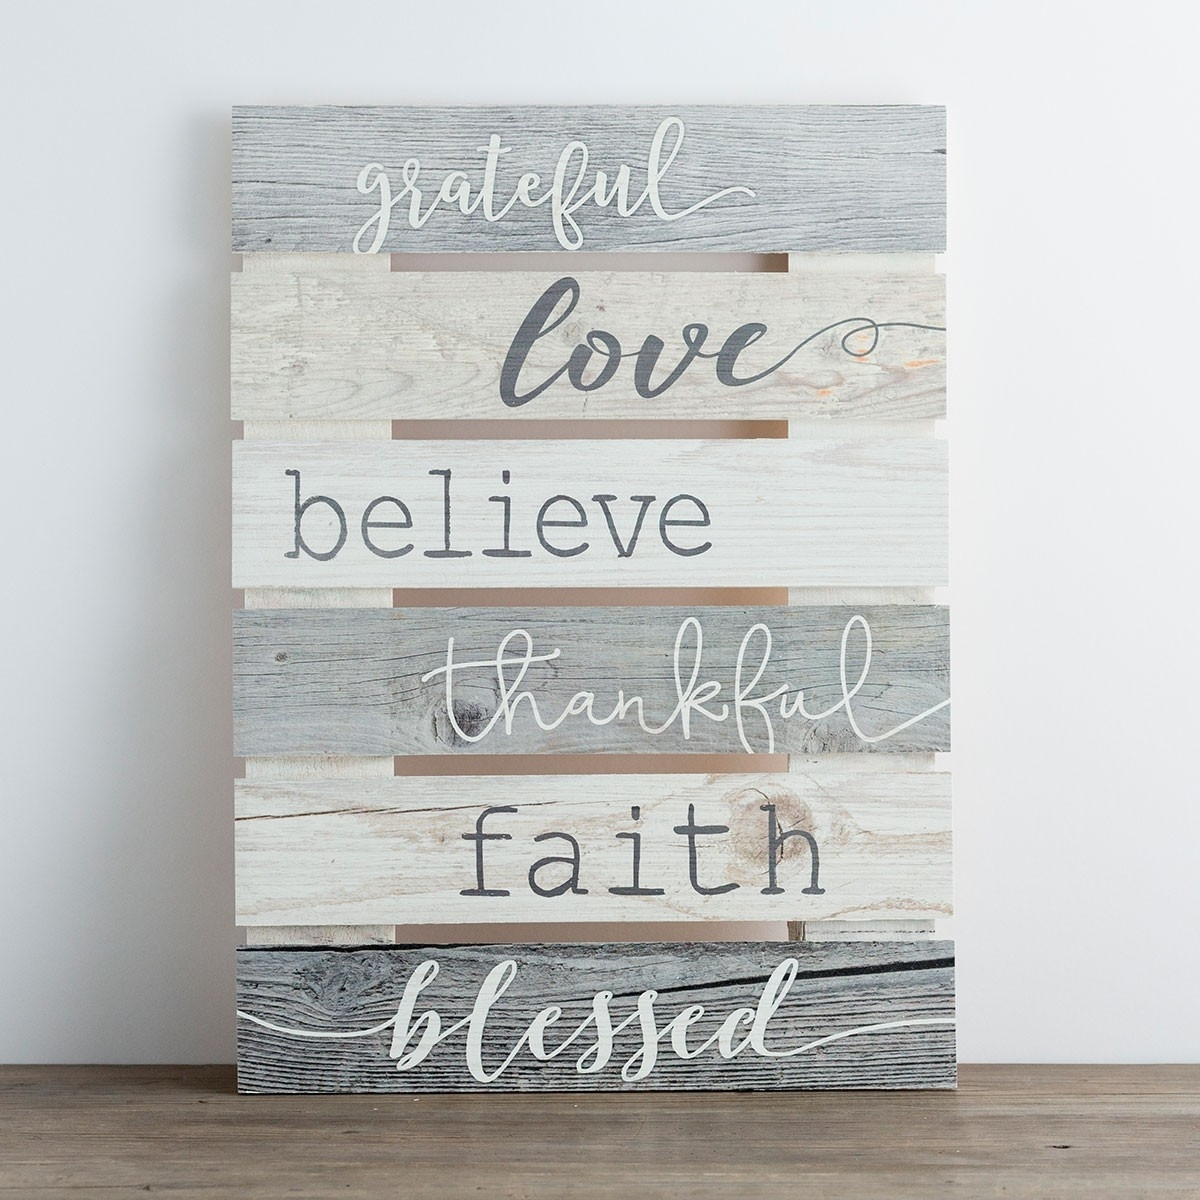 Grateful – Plank Wall Art | Dayspring With Regard To Most Current Plank Wall Art (View 14 of 20)